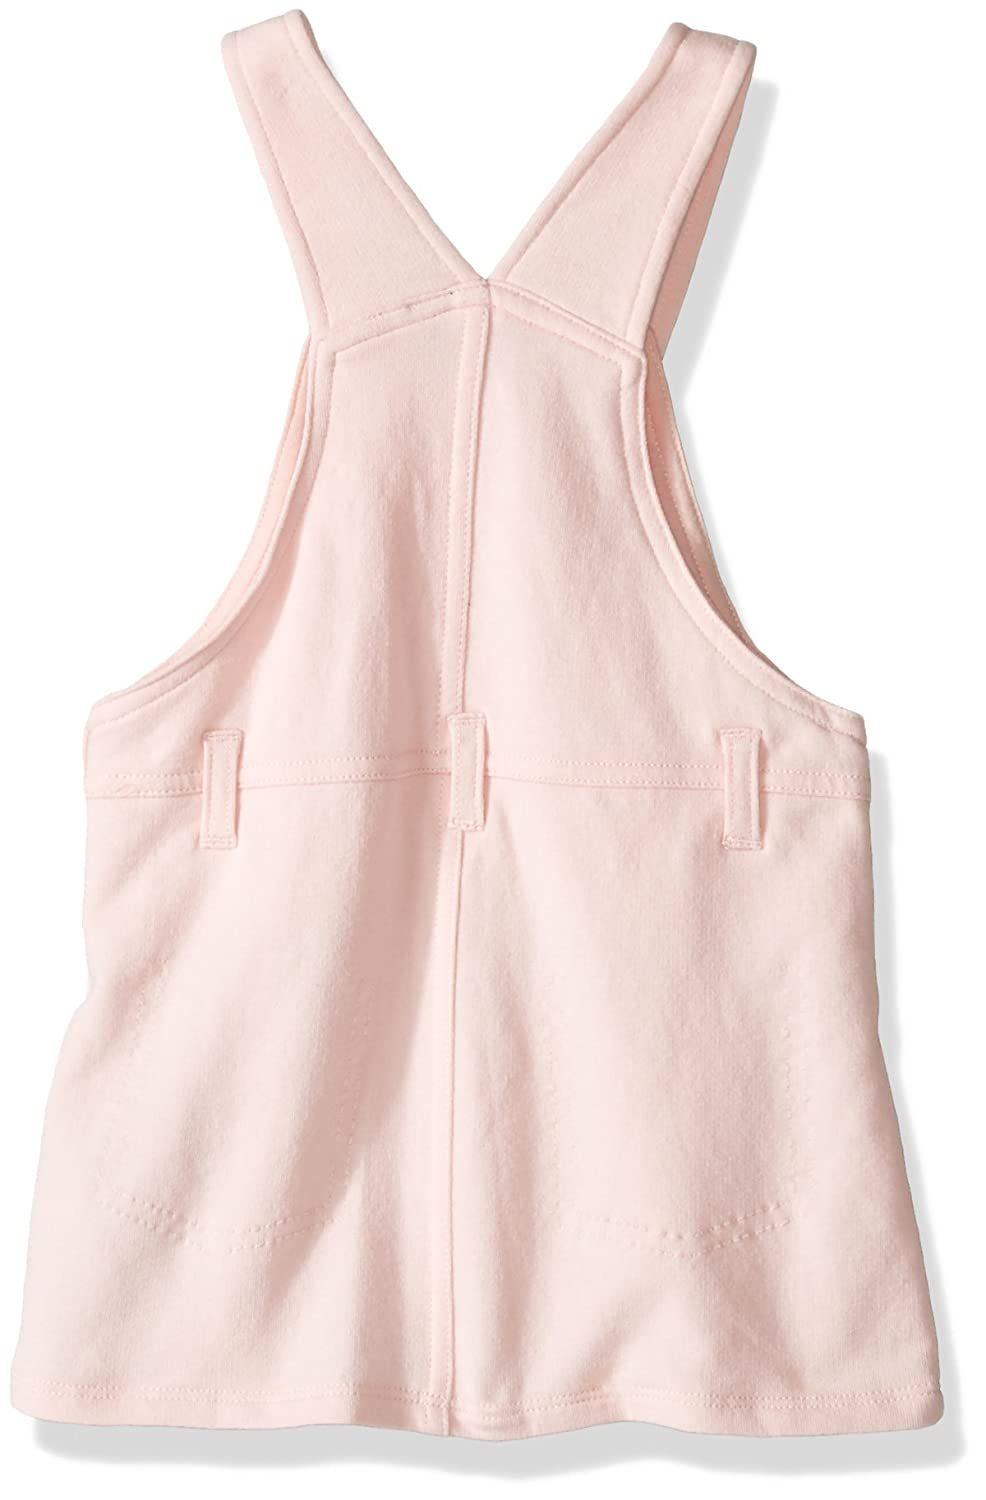 GUESS Baby Girls Bodysuit and Overall Dress Set